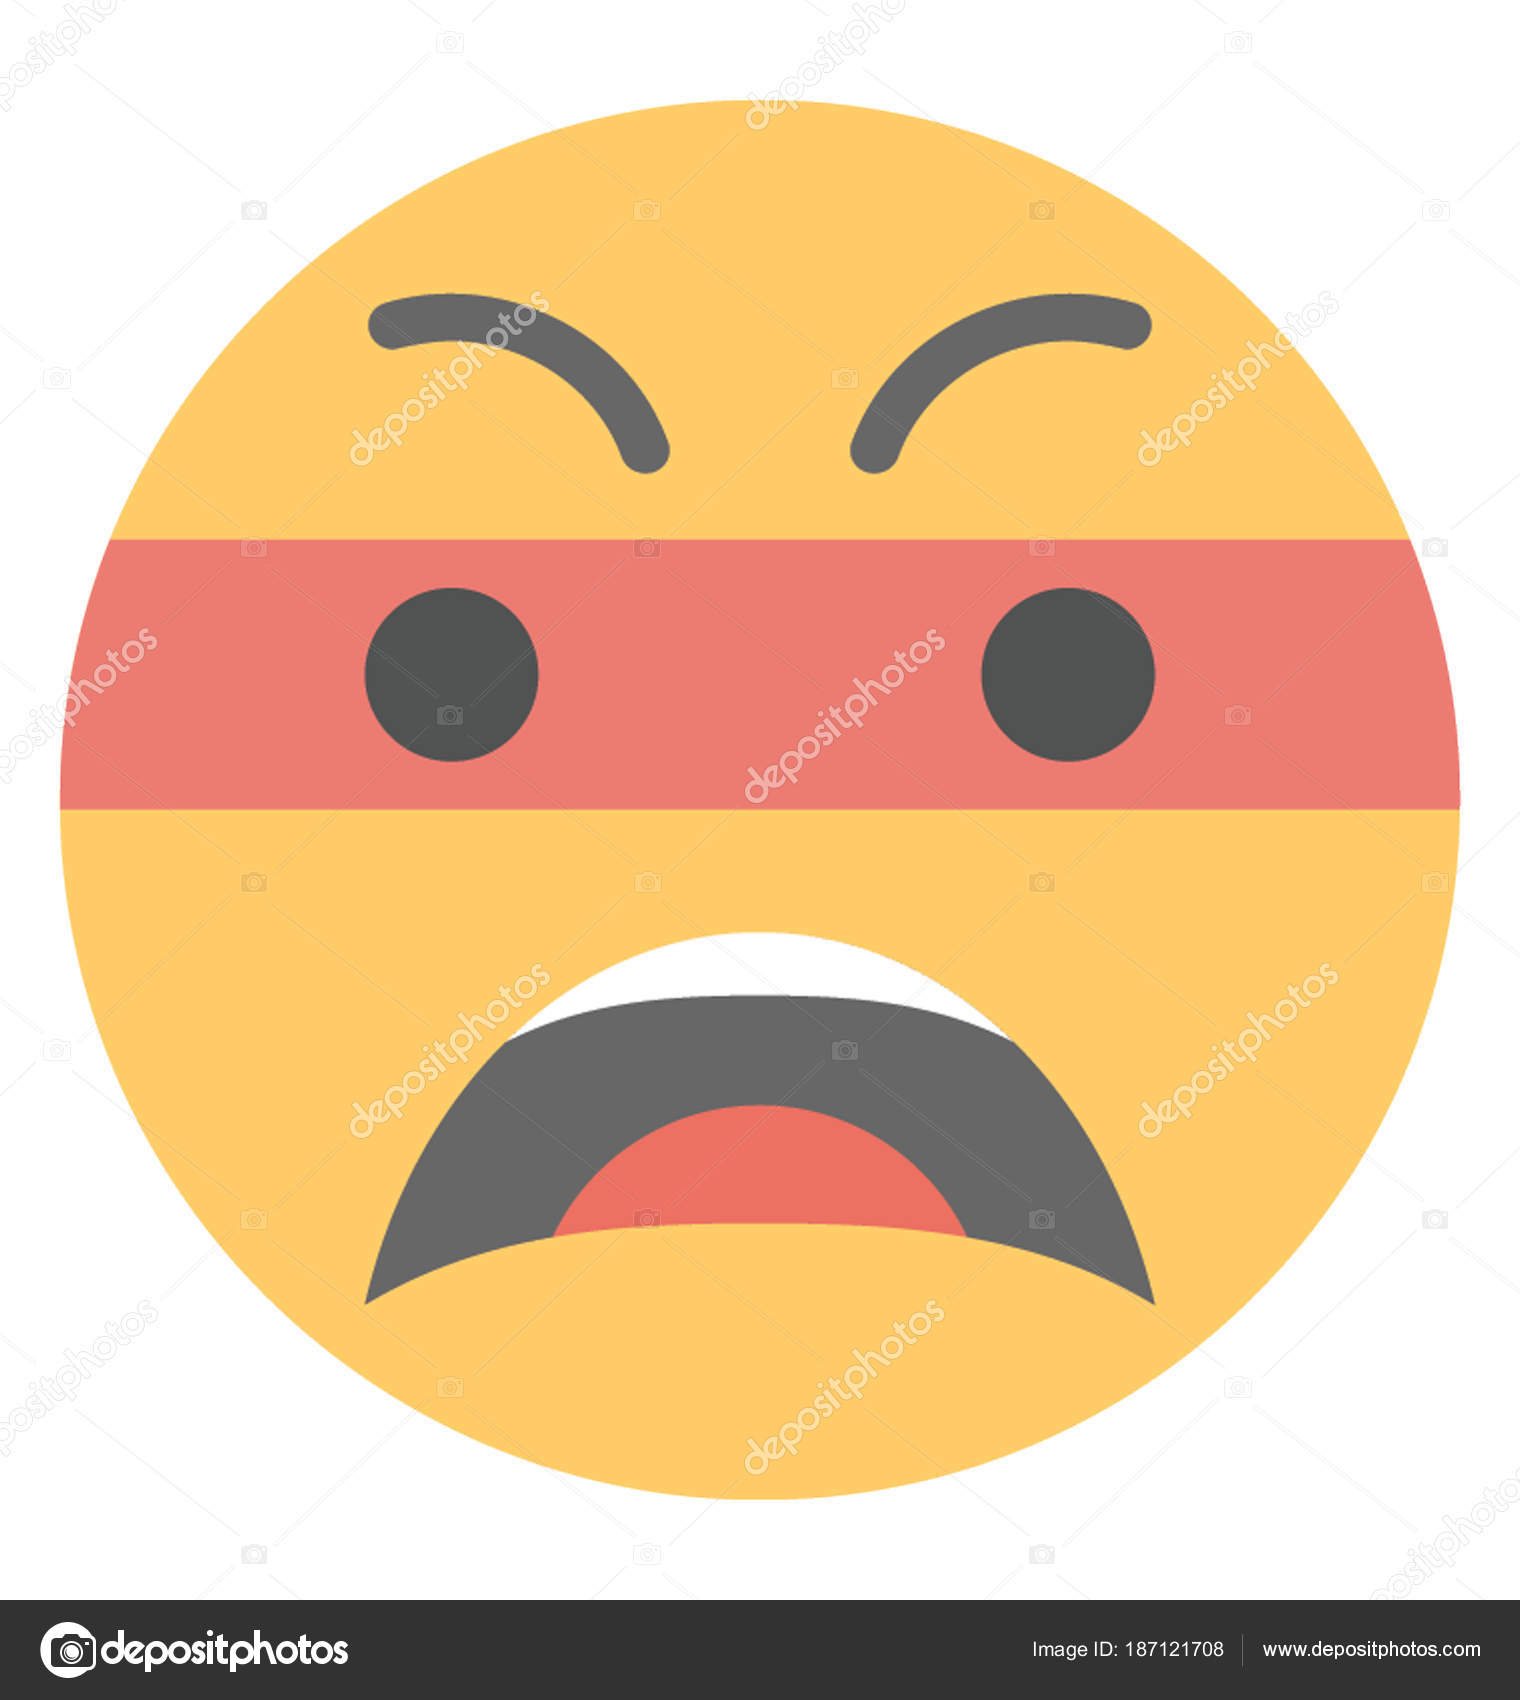 Annoyed emoticon